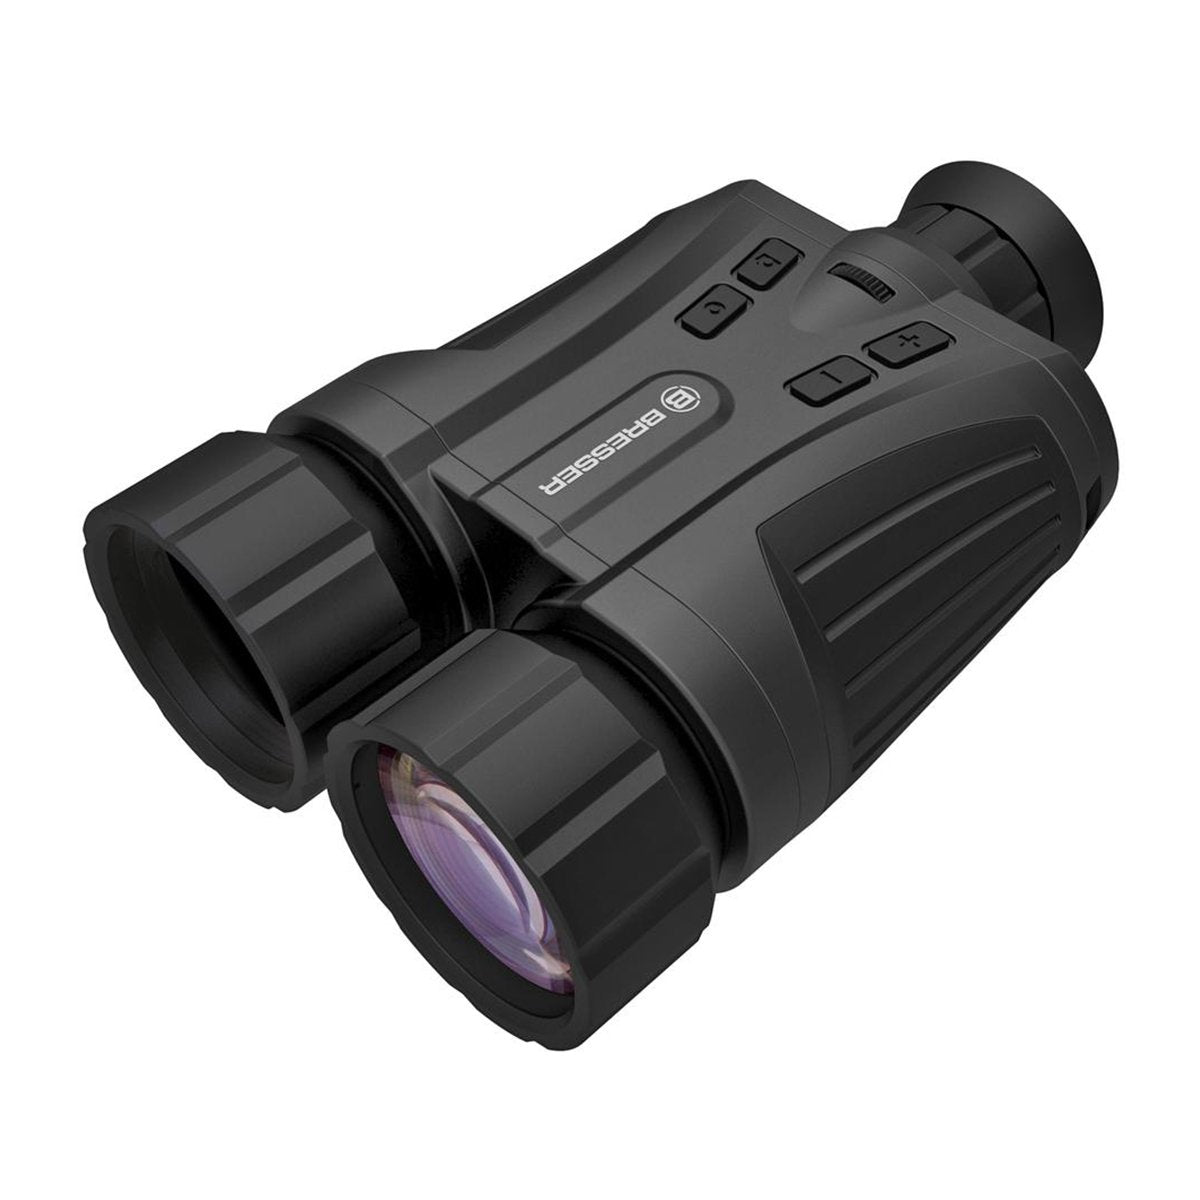 Bresser 5x42 Digital Night Vision Device with Recording Function - 18-77450